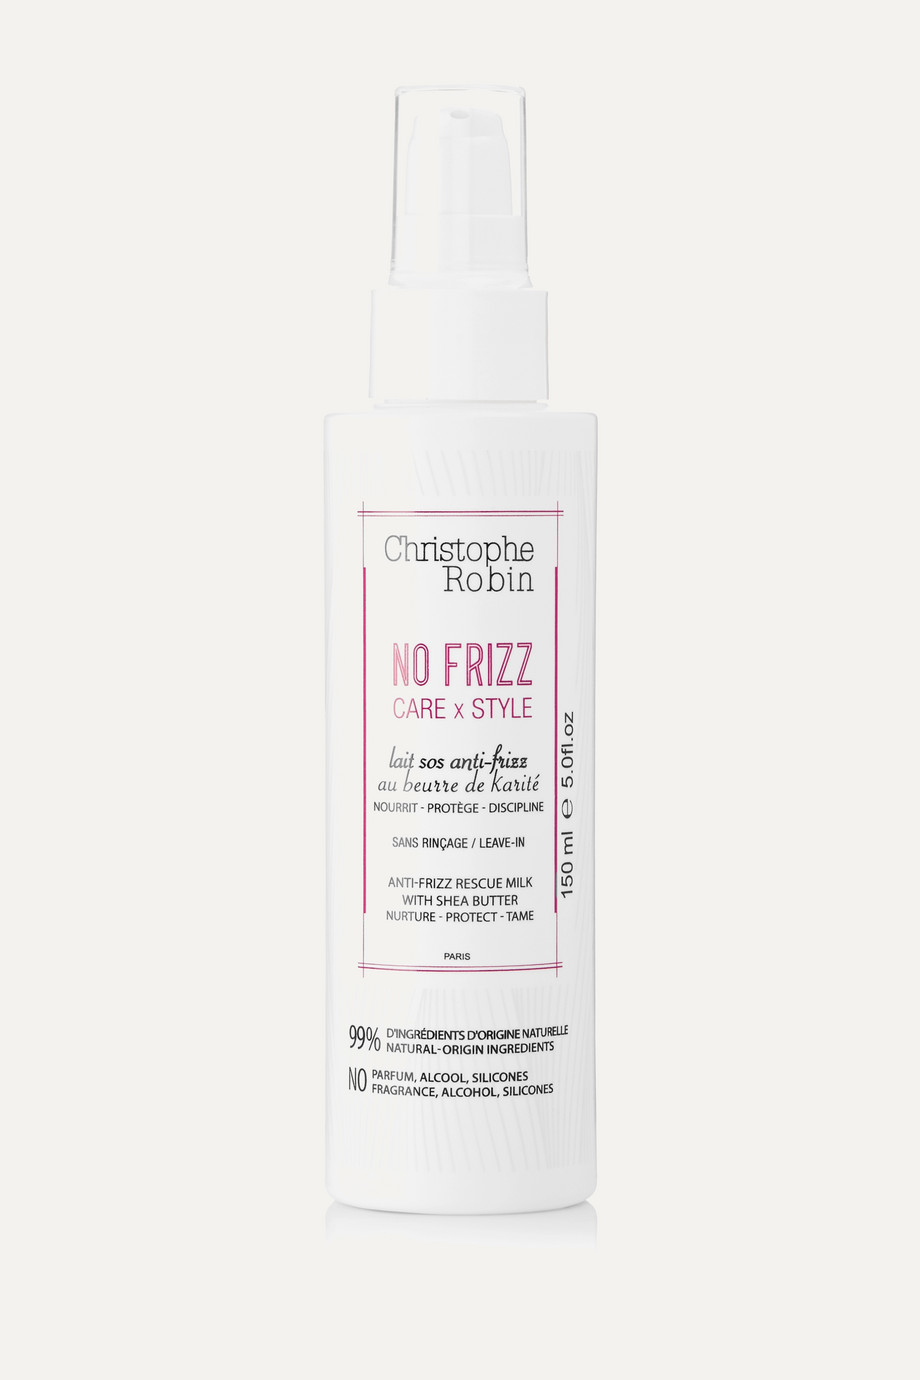 Christophe Robin Anti-Frizz Rescue Milk, 150ml